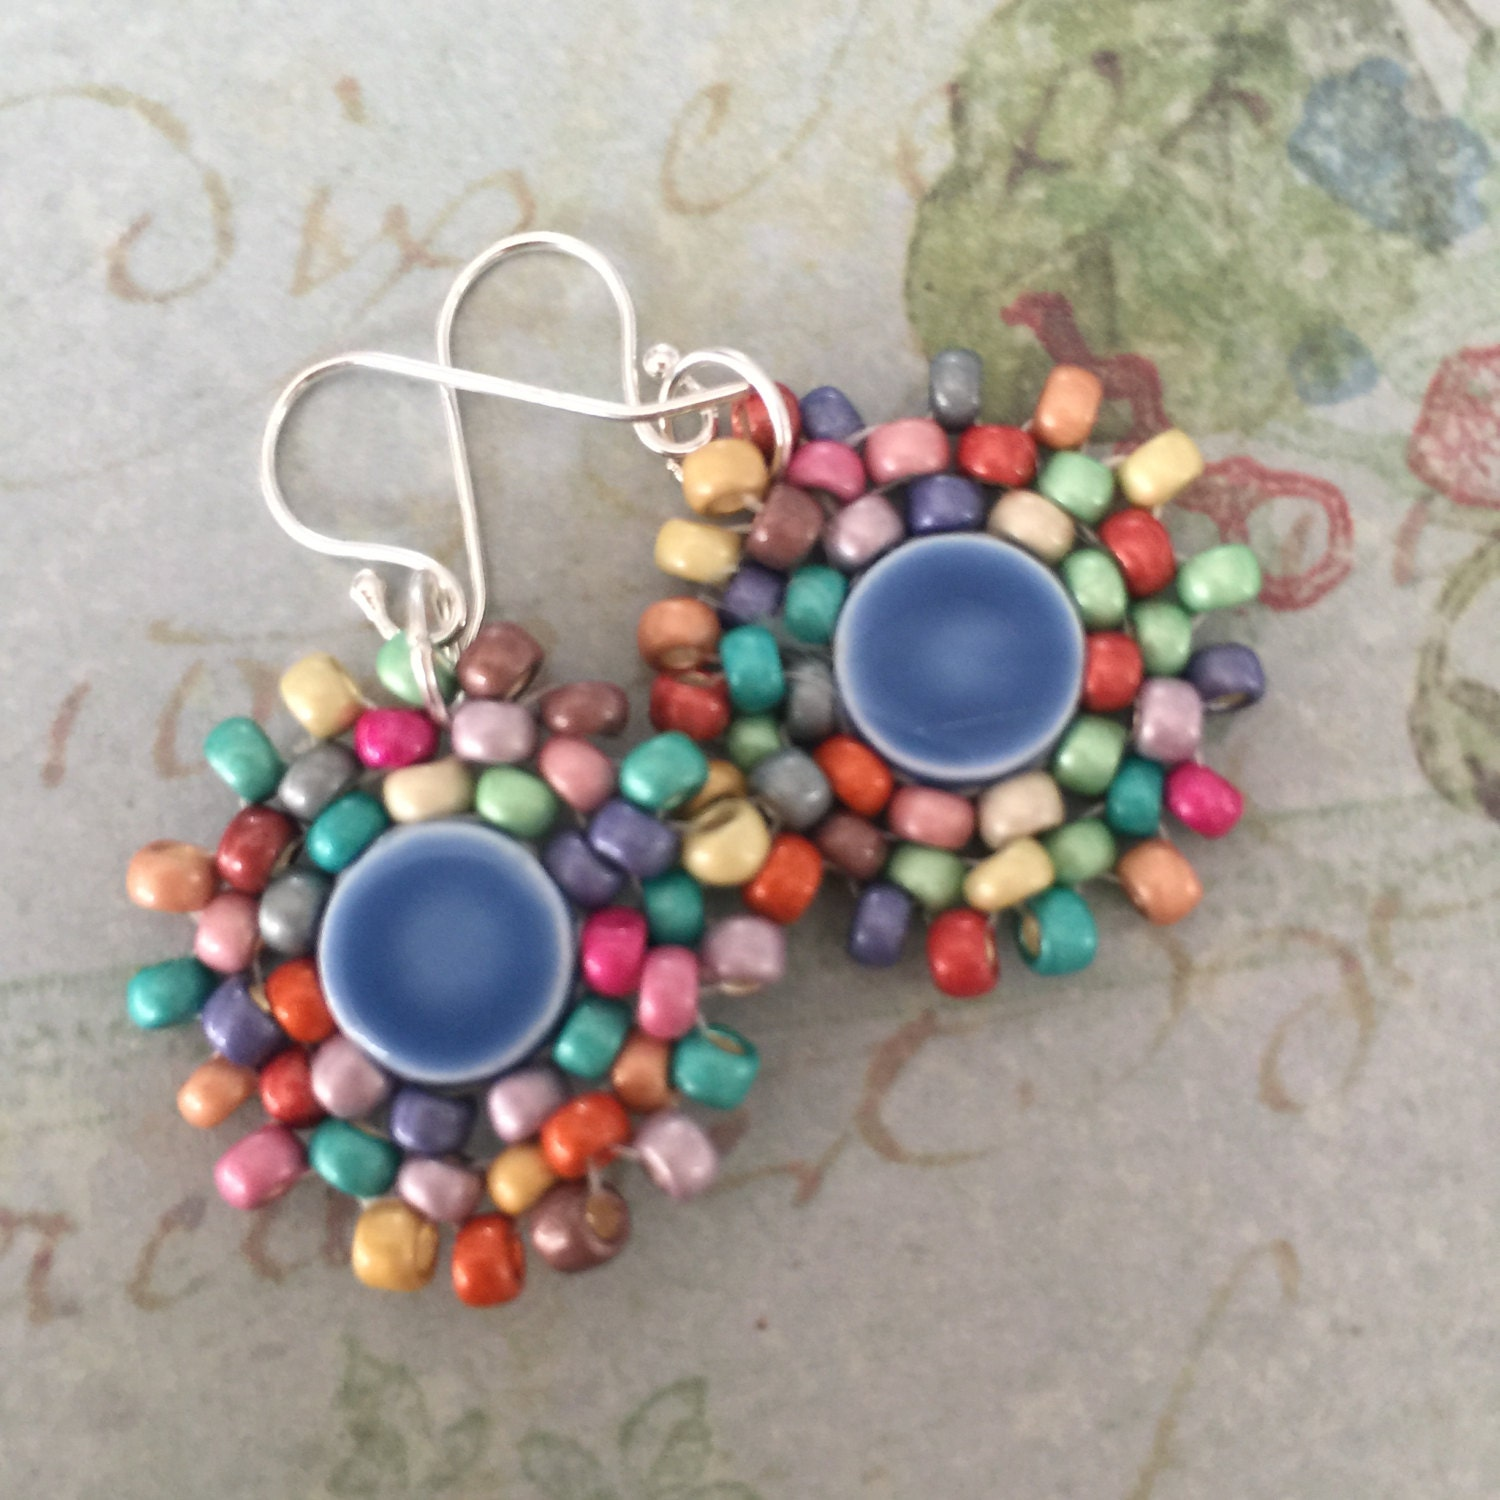 Small Blue Earrings: Small Blue Dangle Earrings Small Seed Bead Earrings